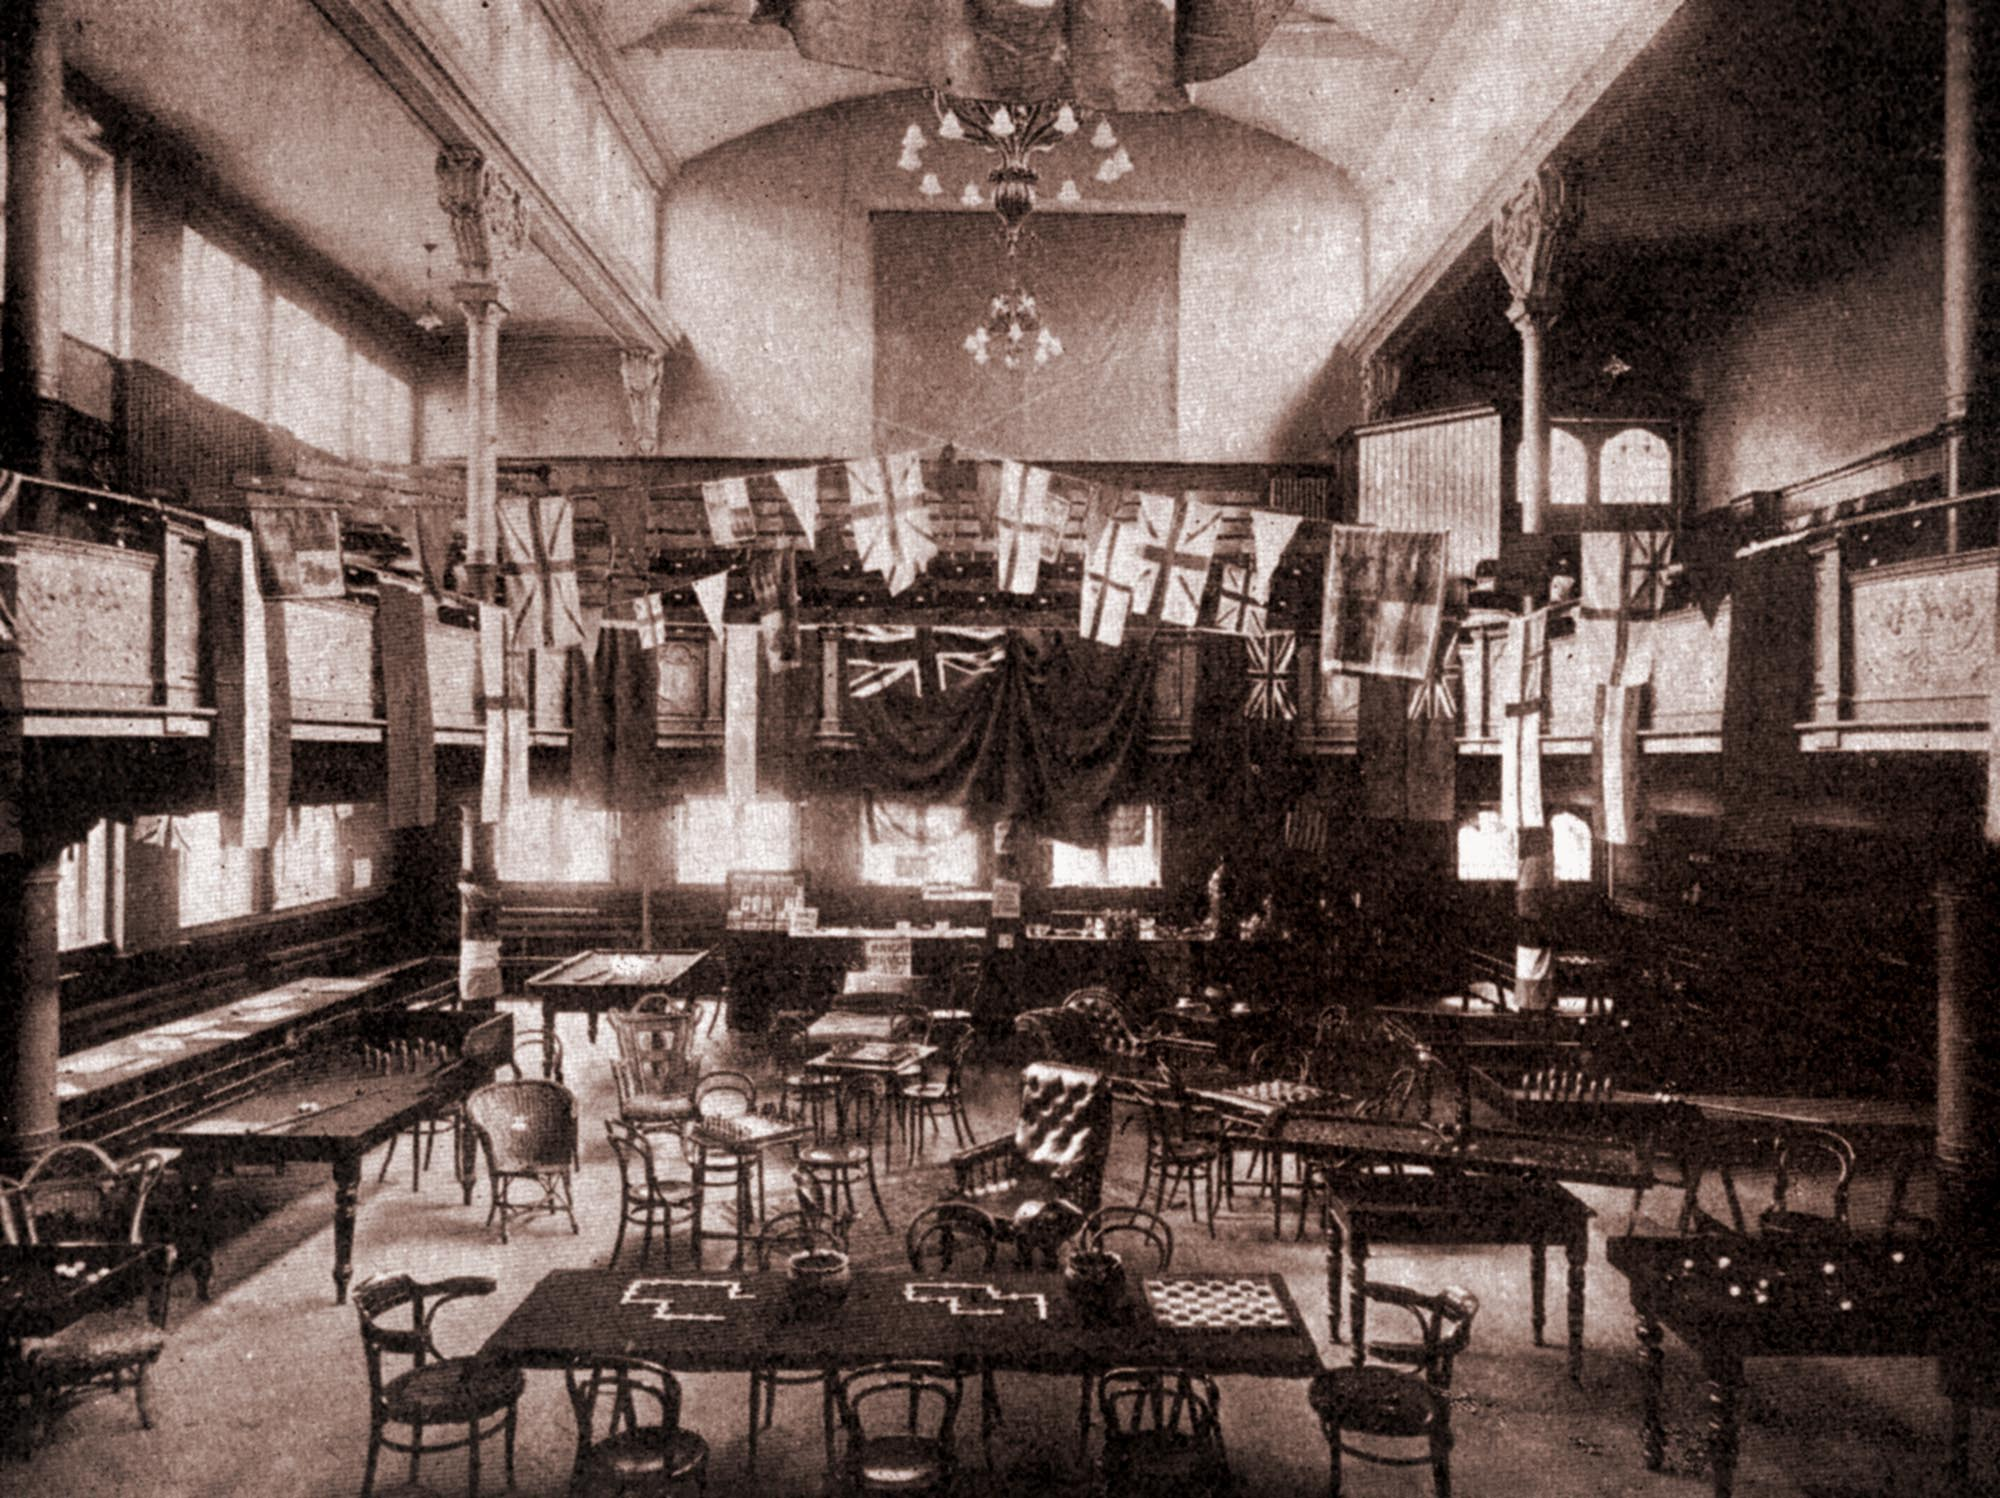 Interior of the YMCA during WWI, 1915 -